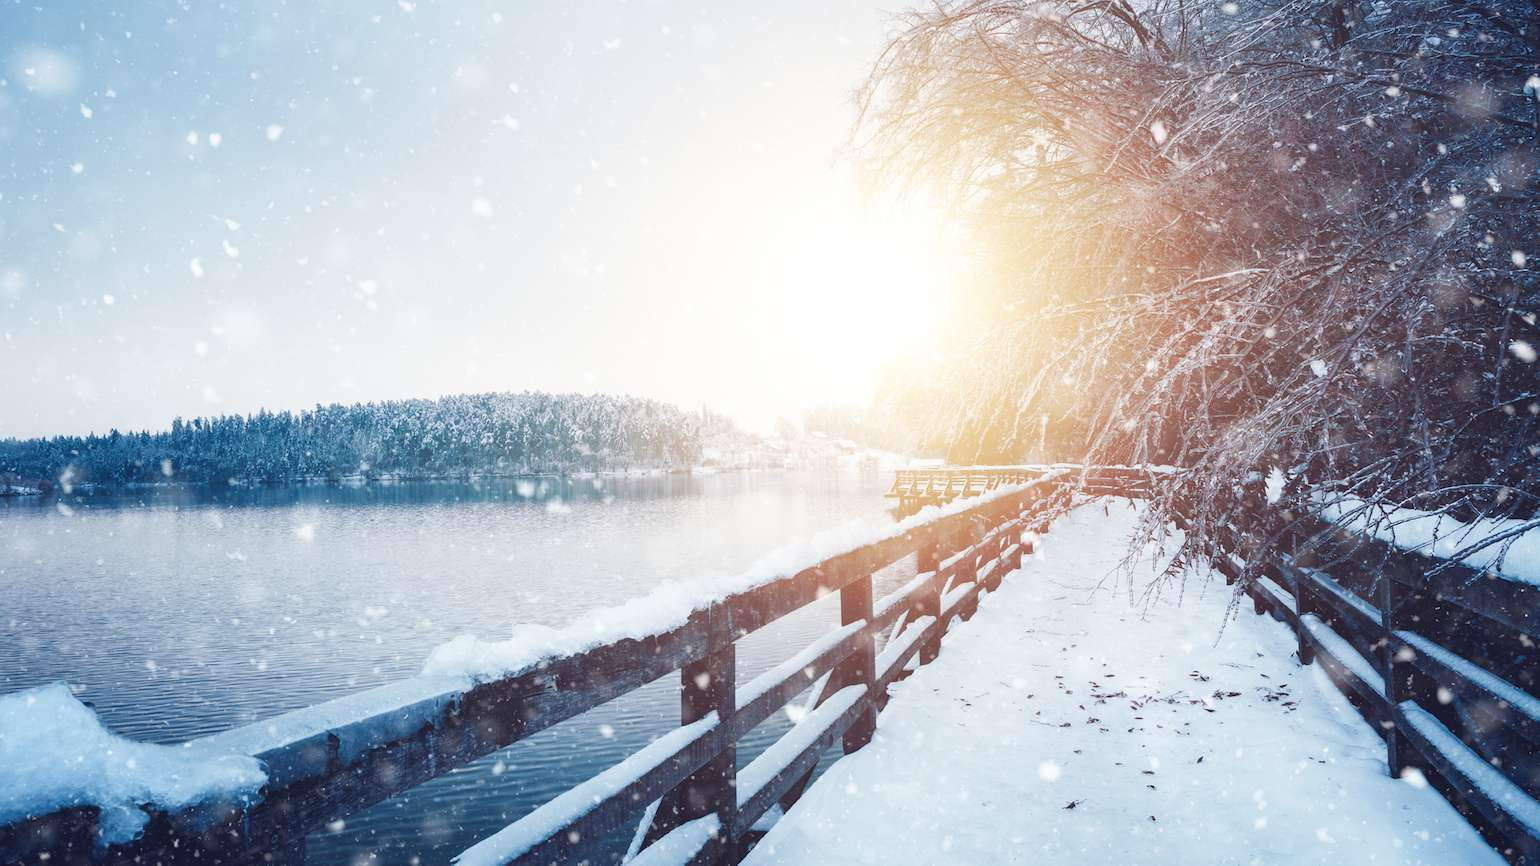 Finding more light and connection with God in short cold days of winter.